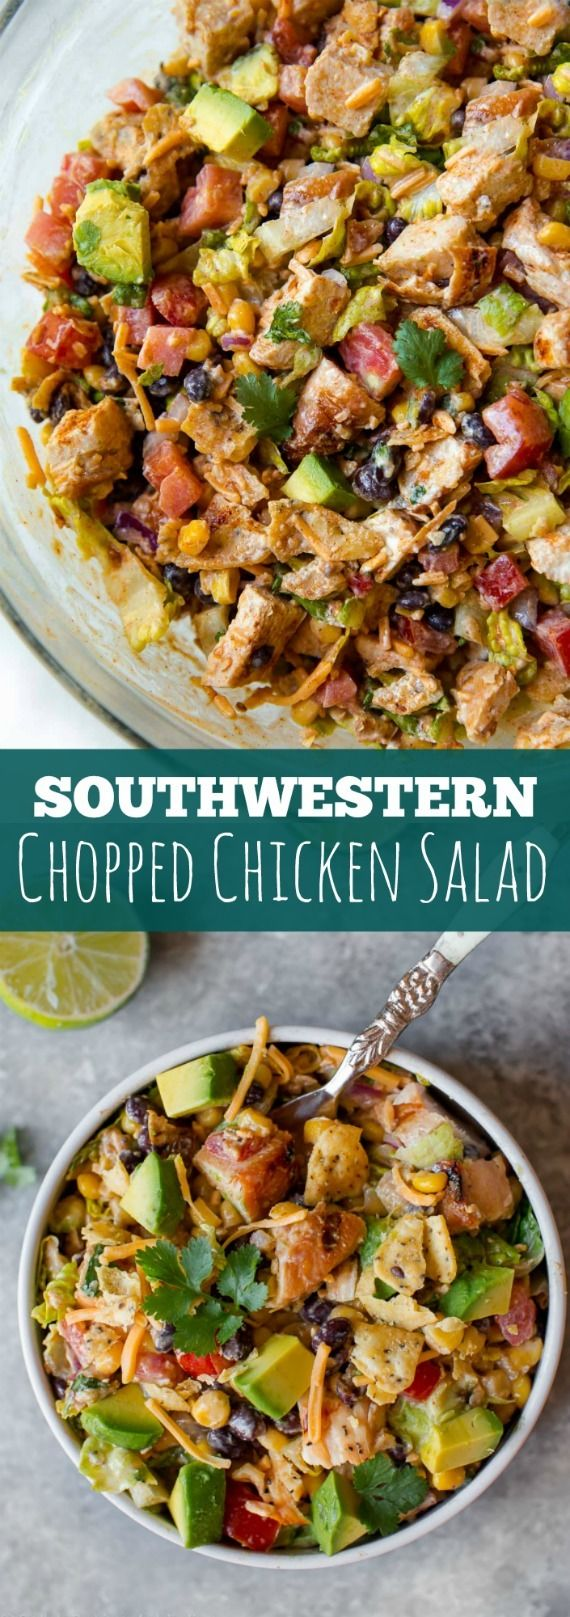 Fiesta in a bowl! This easy, make ahead chopped chicken salad is full of southwestern flavor and is on the table in minutes!